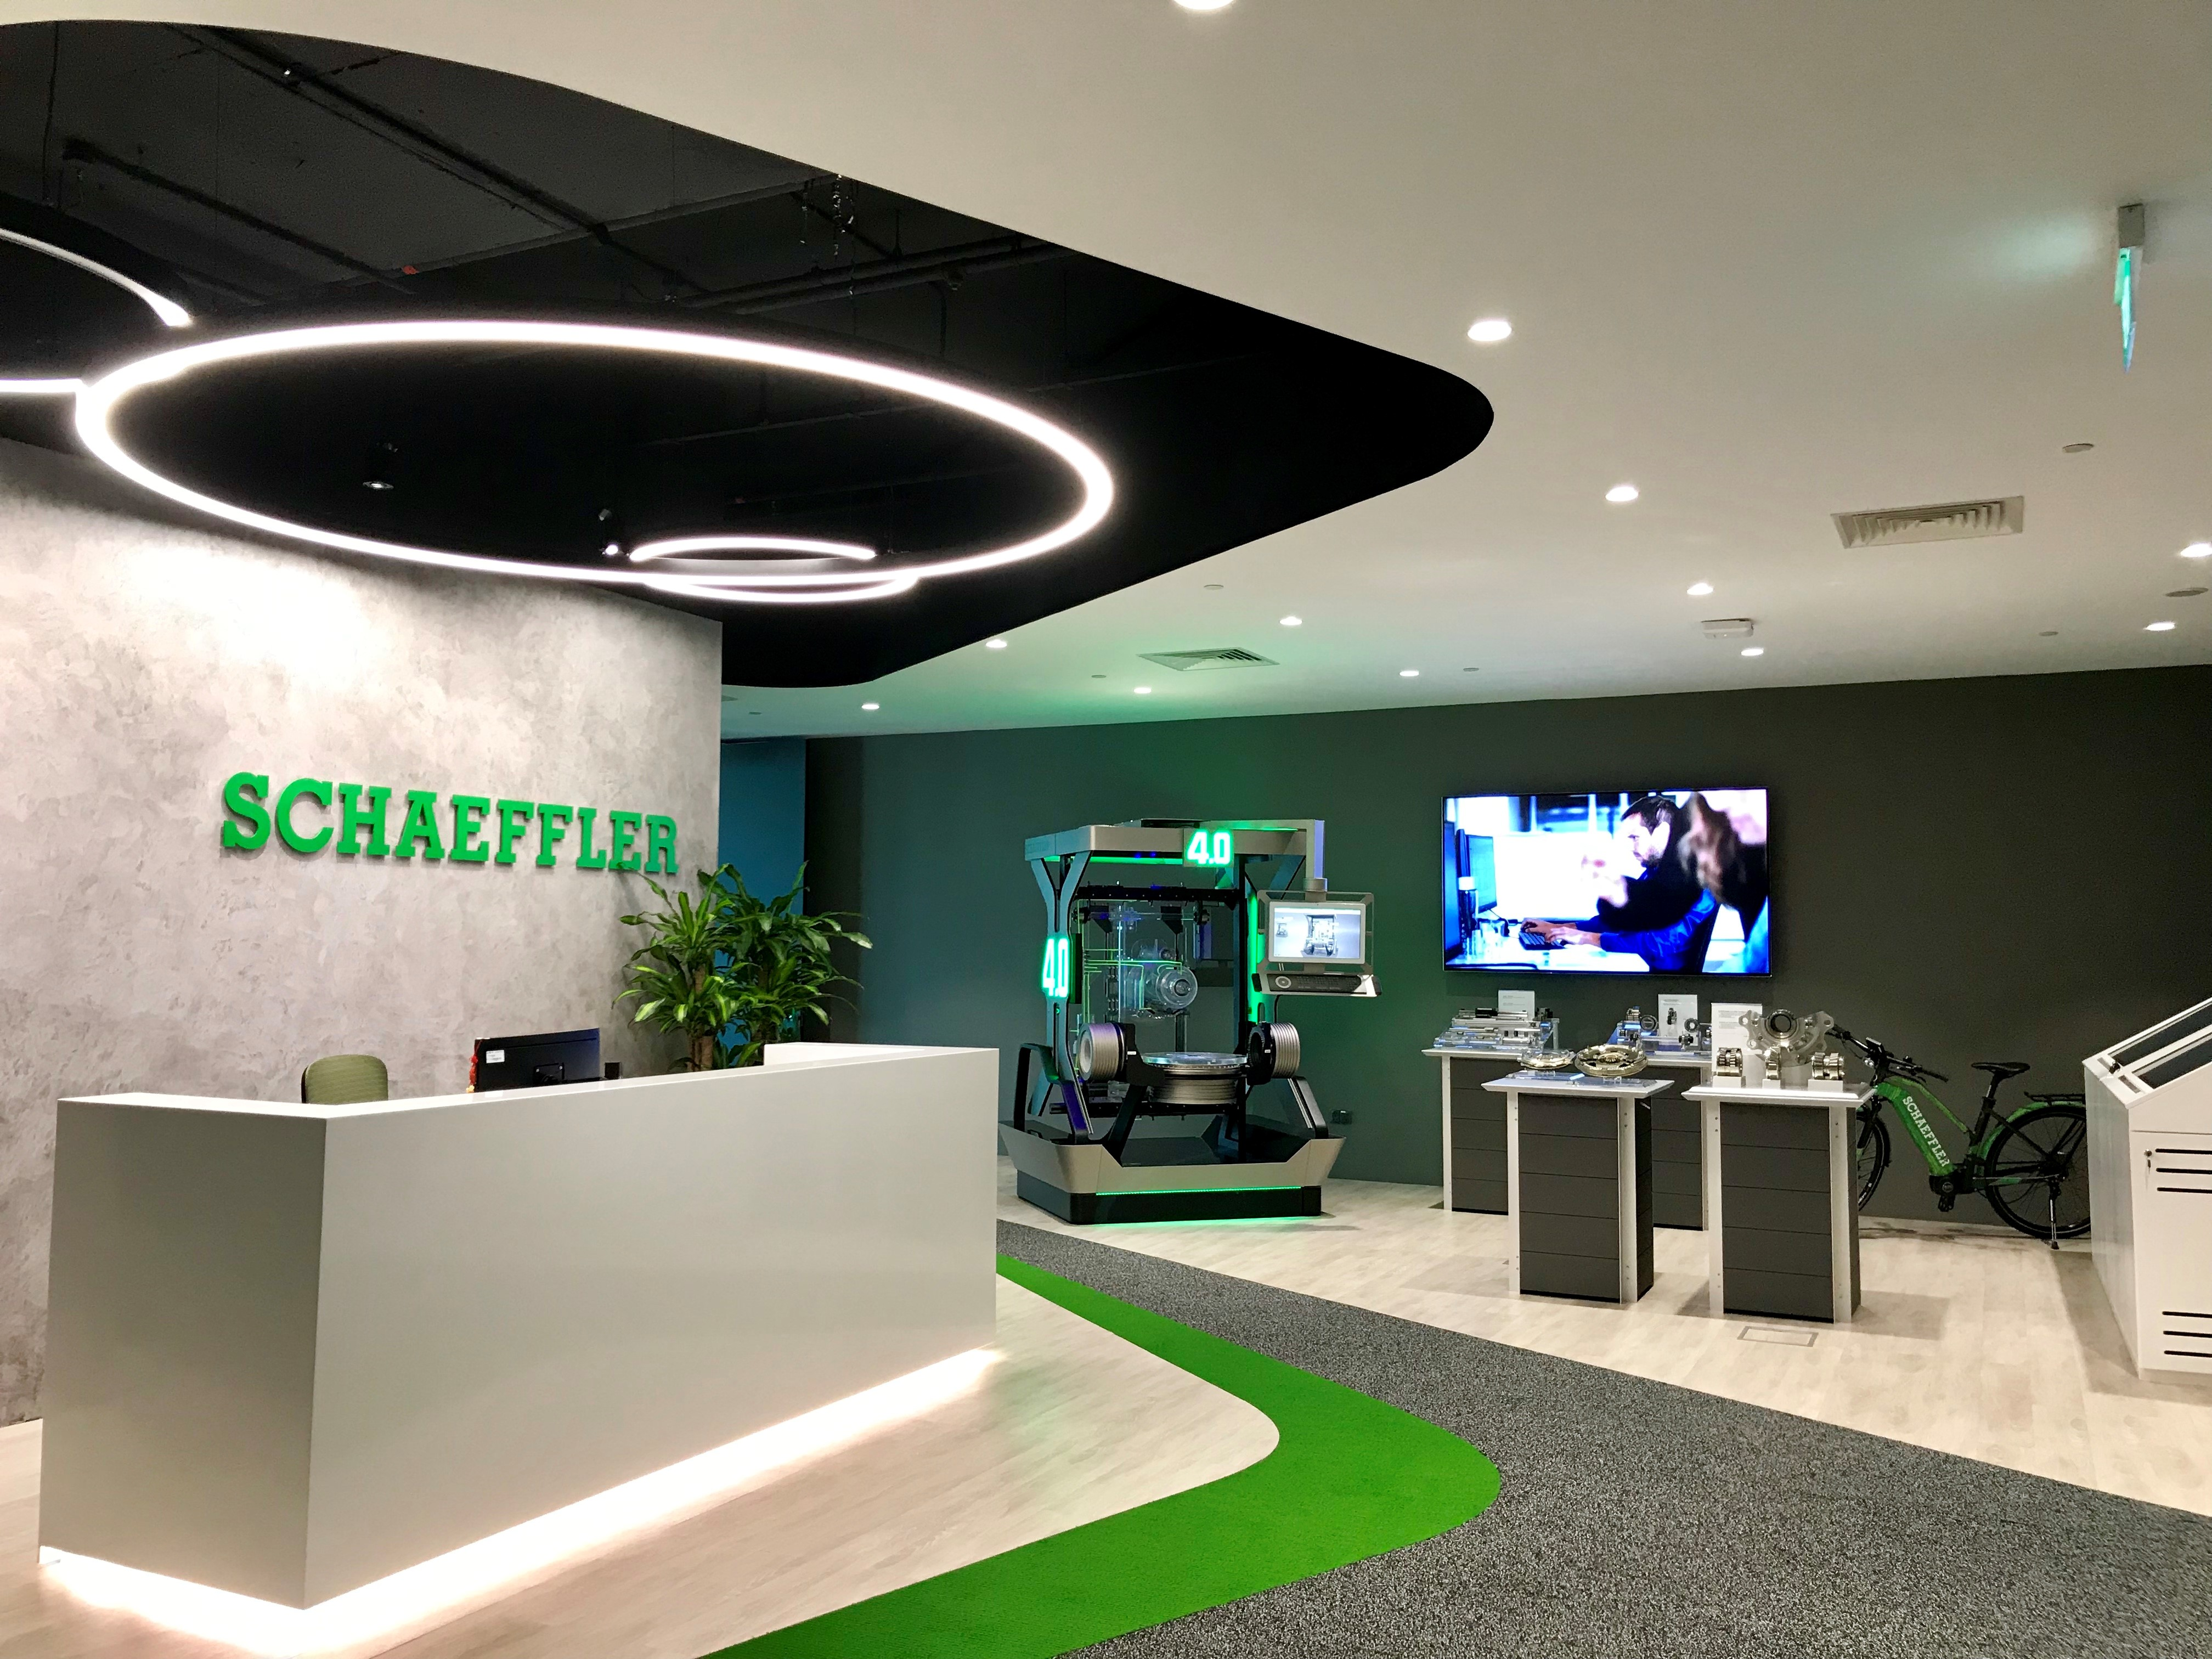 Schaeffler Asia Pacific provides modern collaborative workspaces at their new regional headquarters in Singapore.